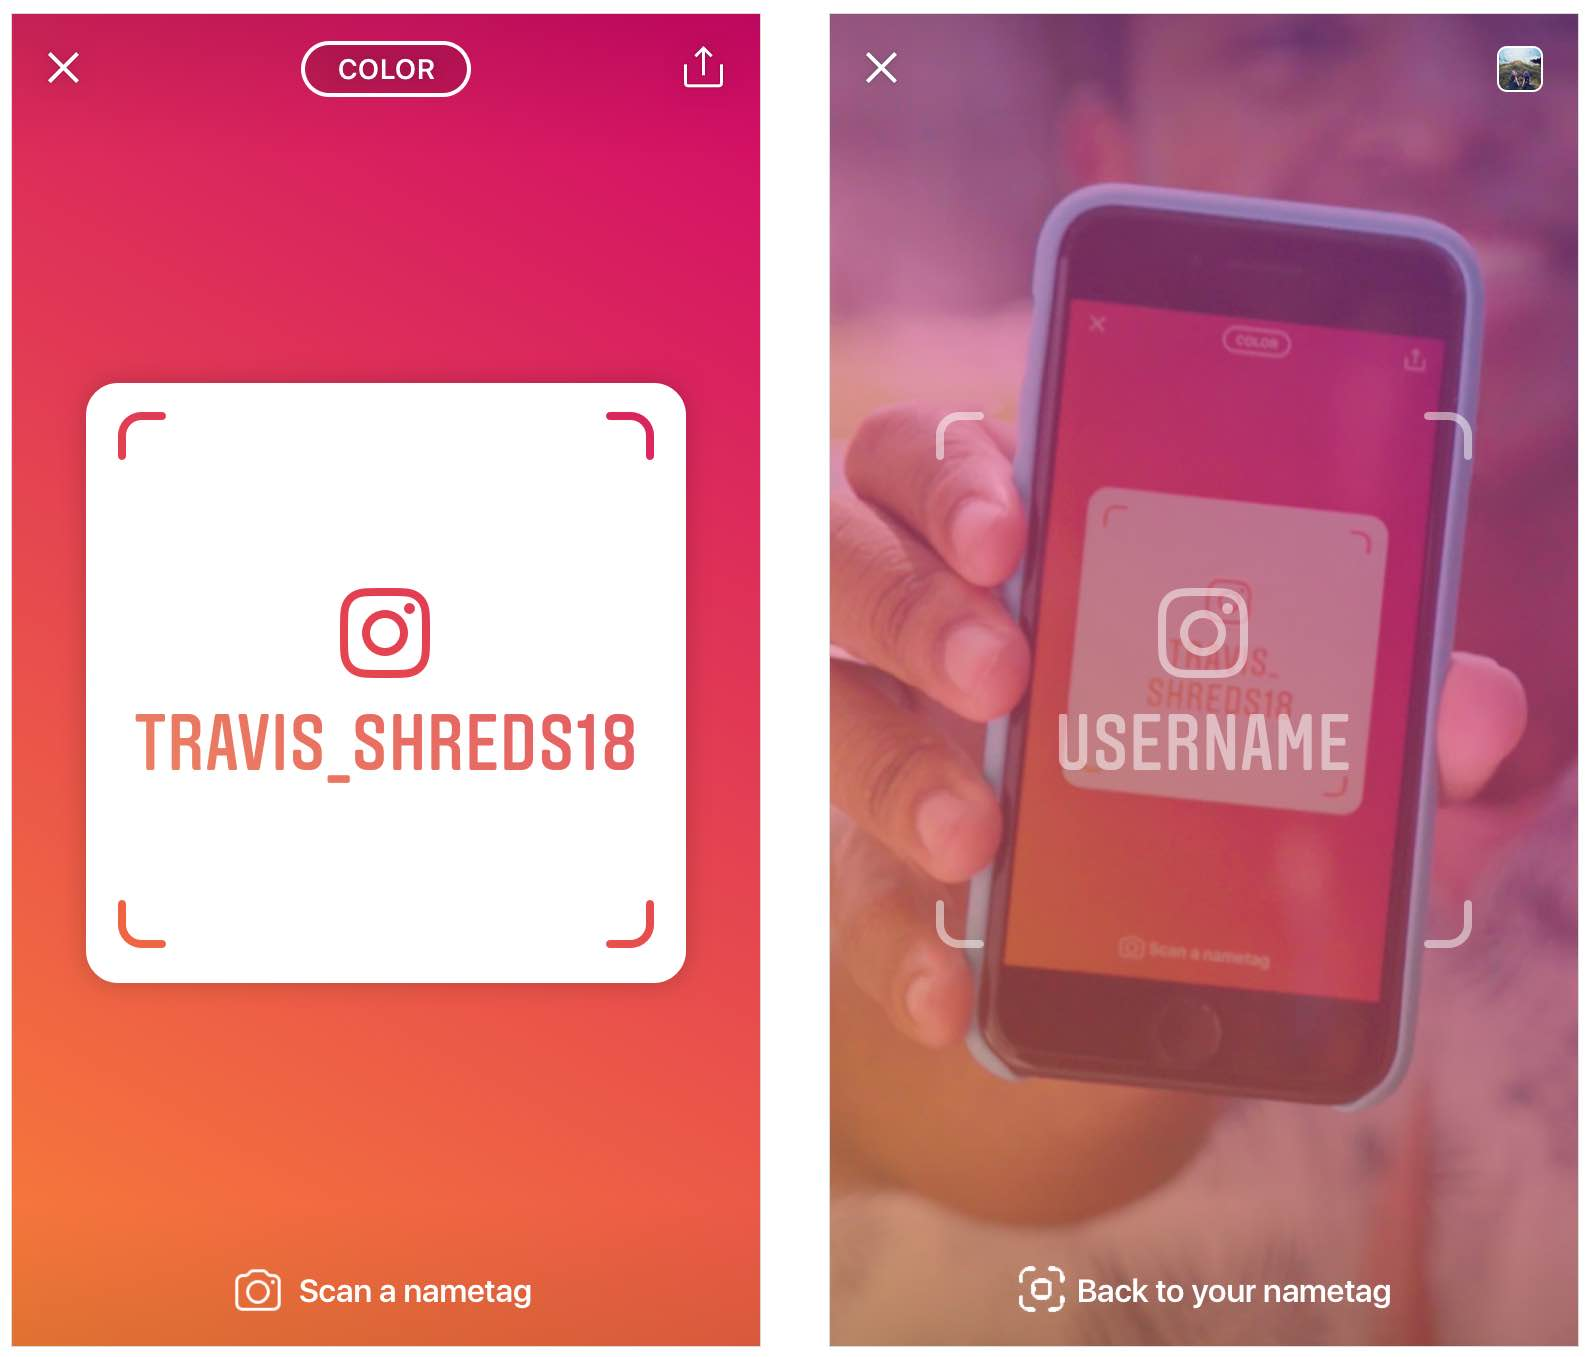 Have You Seen The Latest Instagram Feature 2